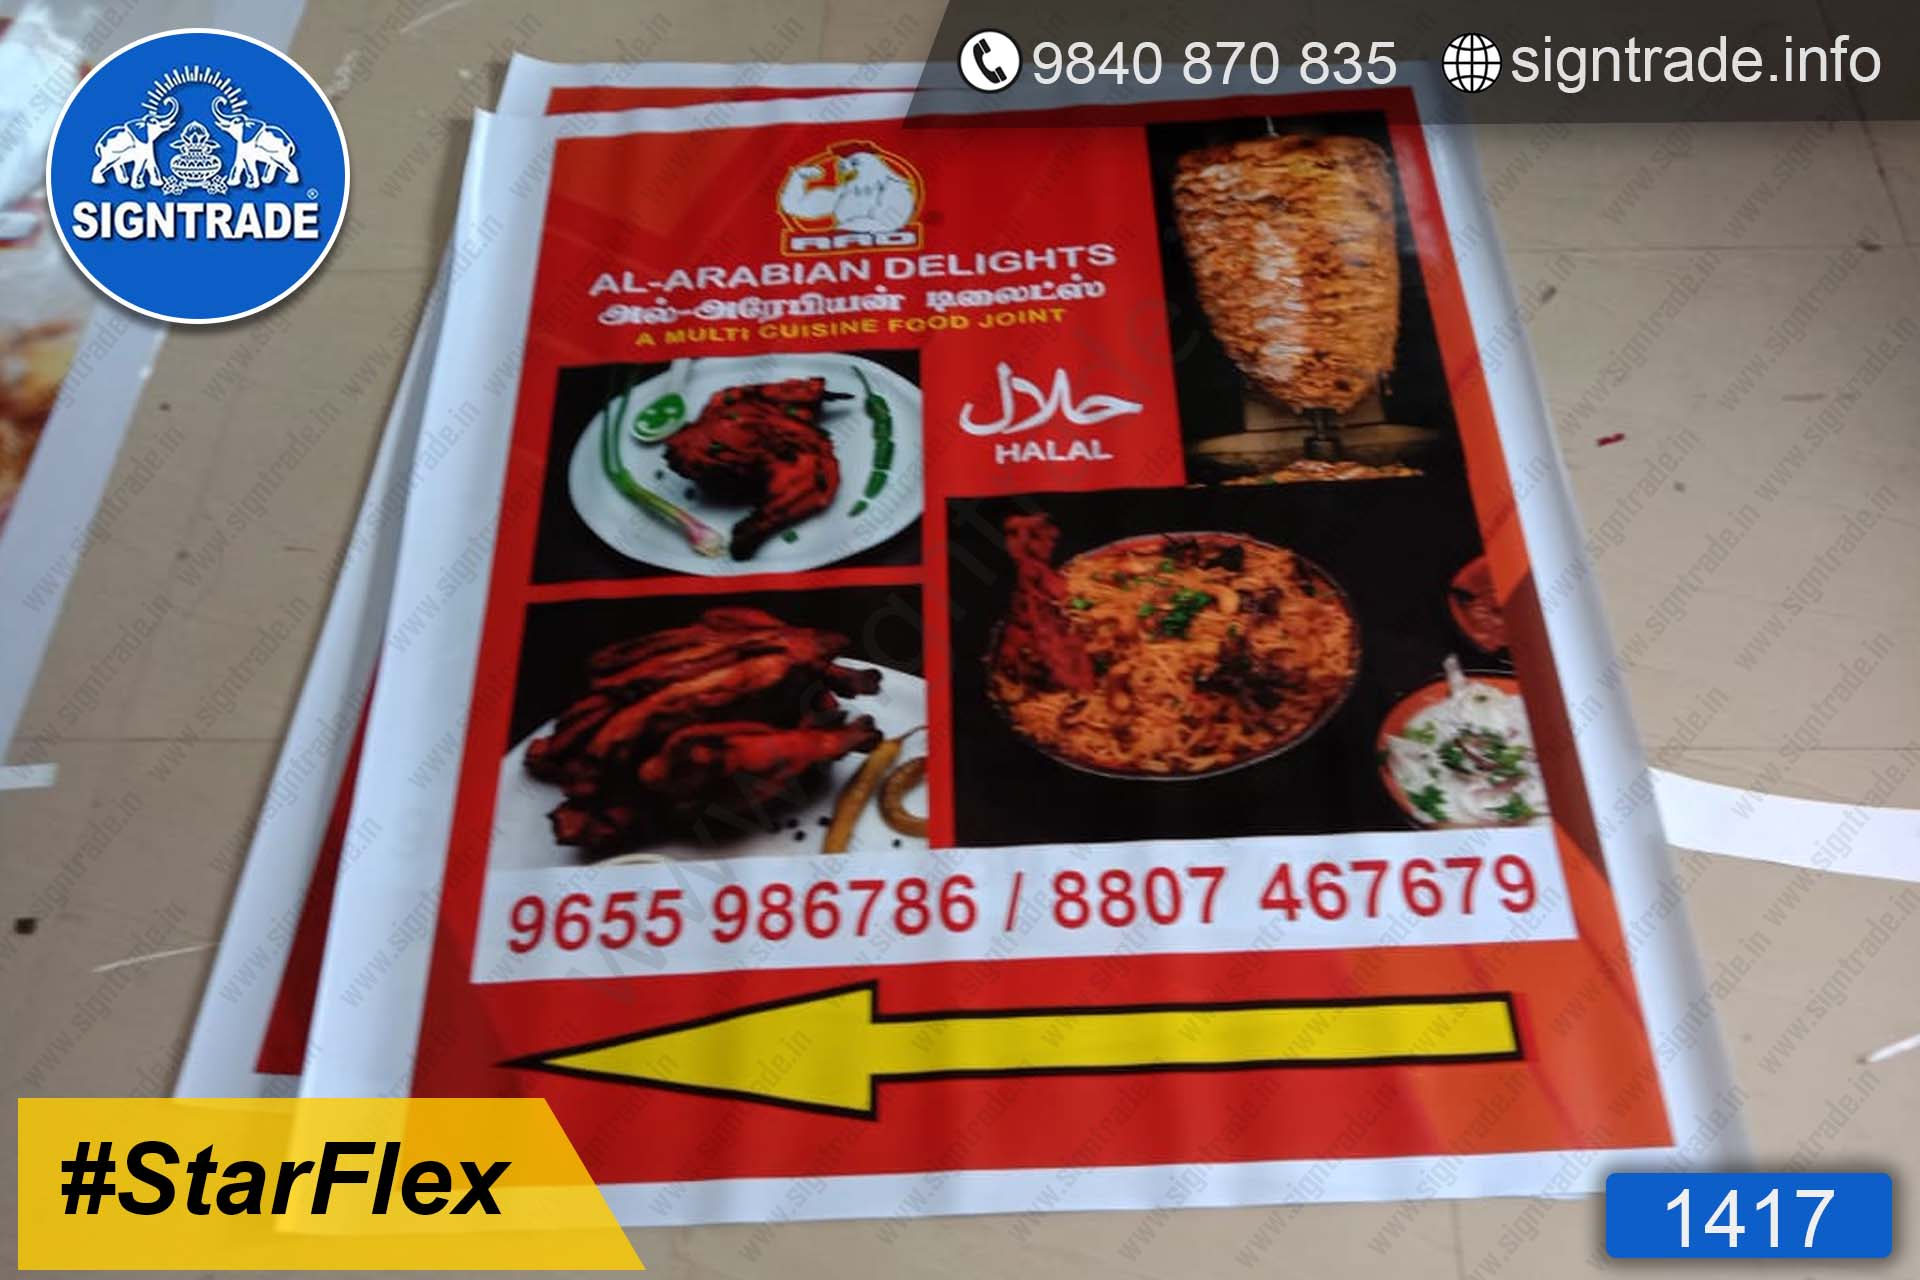 Al Arabian Delights Restaurant - 1417, Flex Board, Frontlit Flex Board, Star Frontlit Flex Board, Frontlit Flex Banners, Shop Front Flex Board, Shop Flex Board, Star Flex